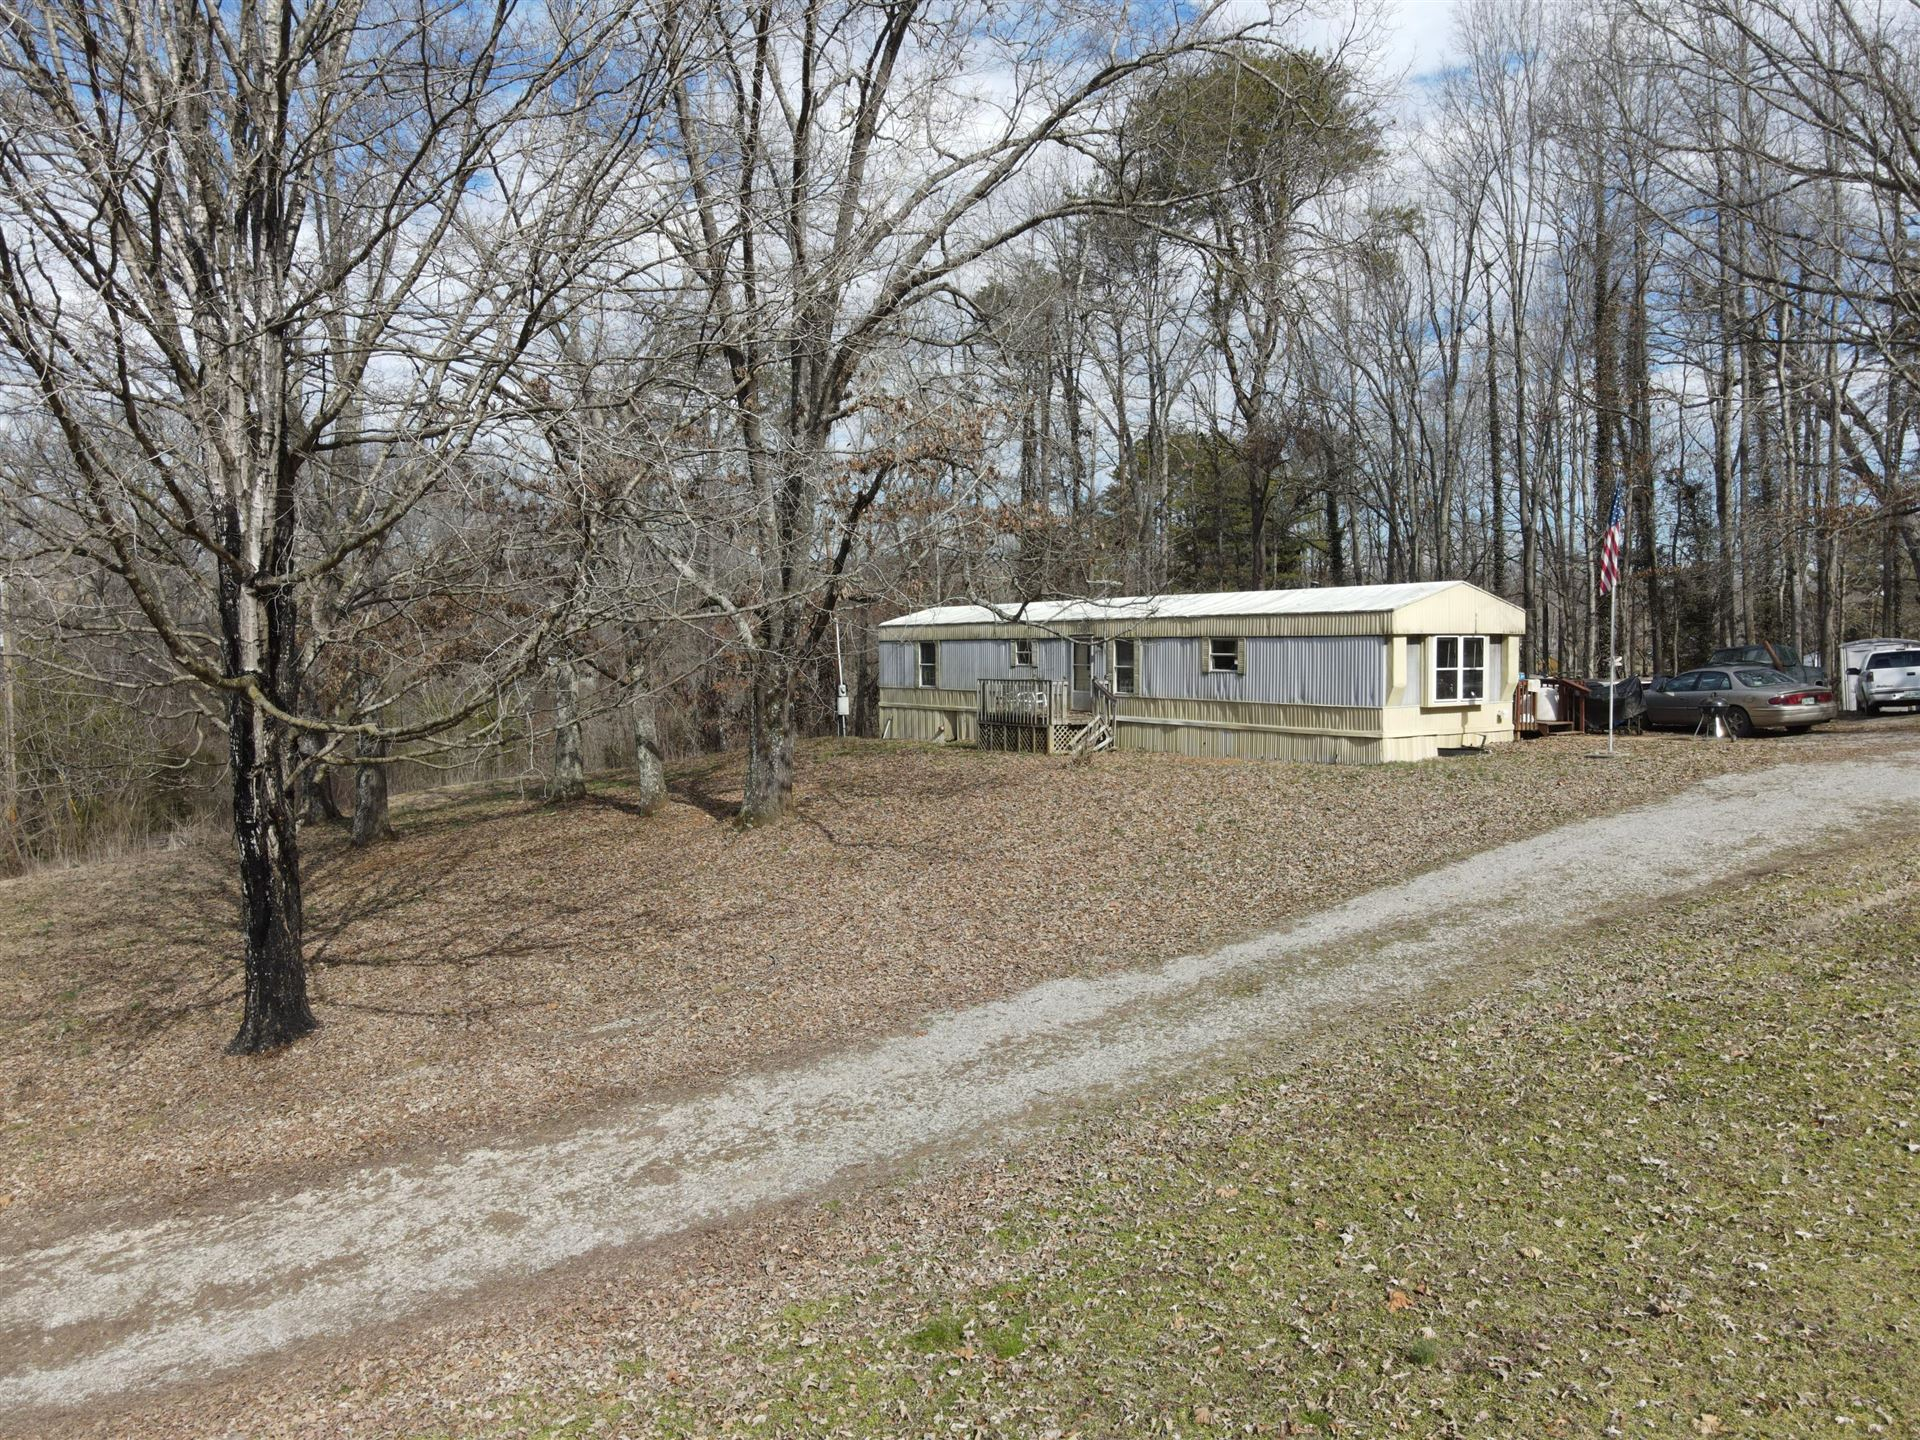 Photo of 12624 Hickory Creek Rd, Knoxville, TN 37932 (MLS # 1143893)